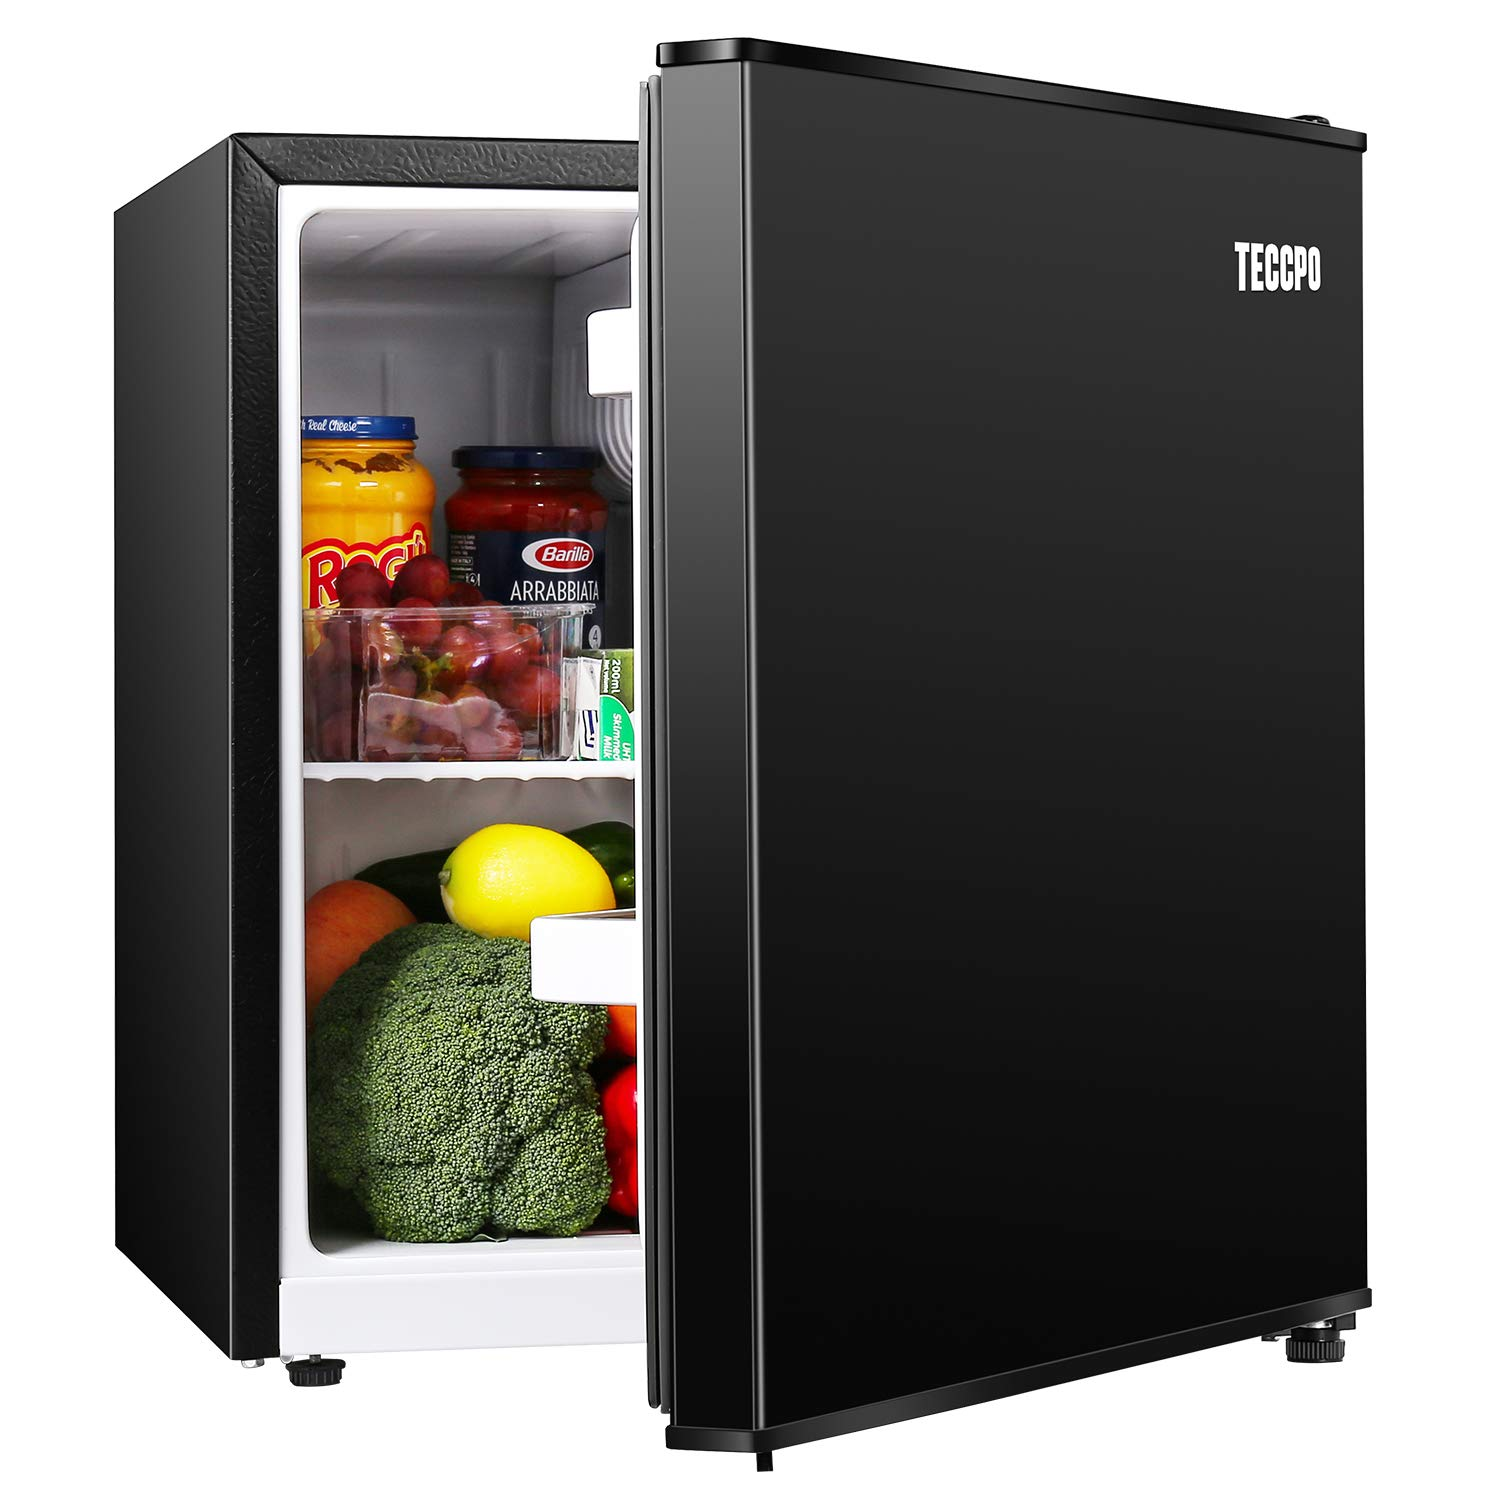 Mini Fridge, TECCPO 1.7 Cu.Ft. Small Refrigerator, Energy Star, 6 Adjustable Thermostat Control, One-touch Easy Defrost, 37 dB, Compact Refrigerator for Bedroom, Dorm, Office - TAMF30